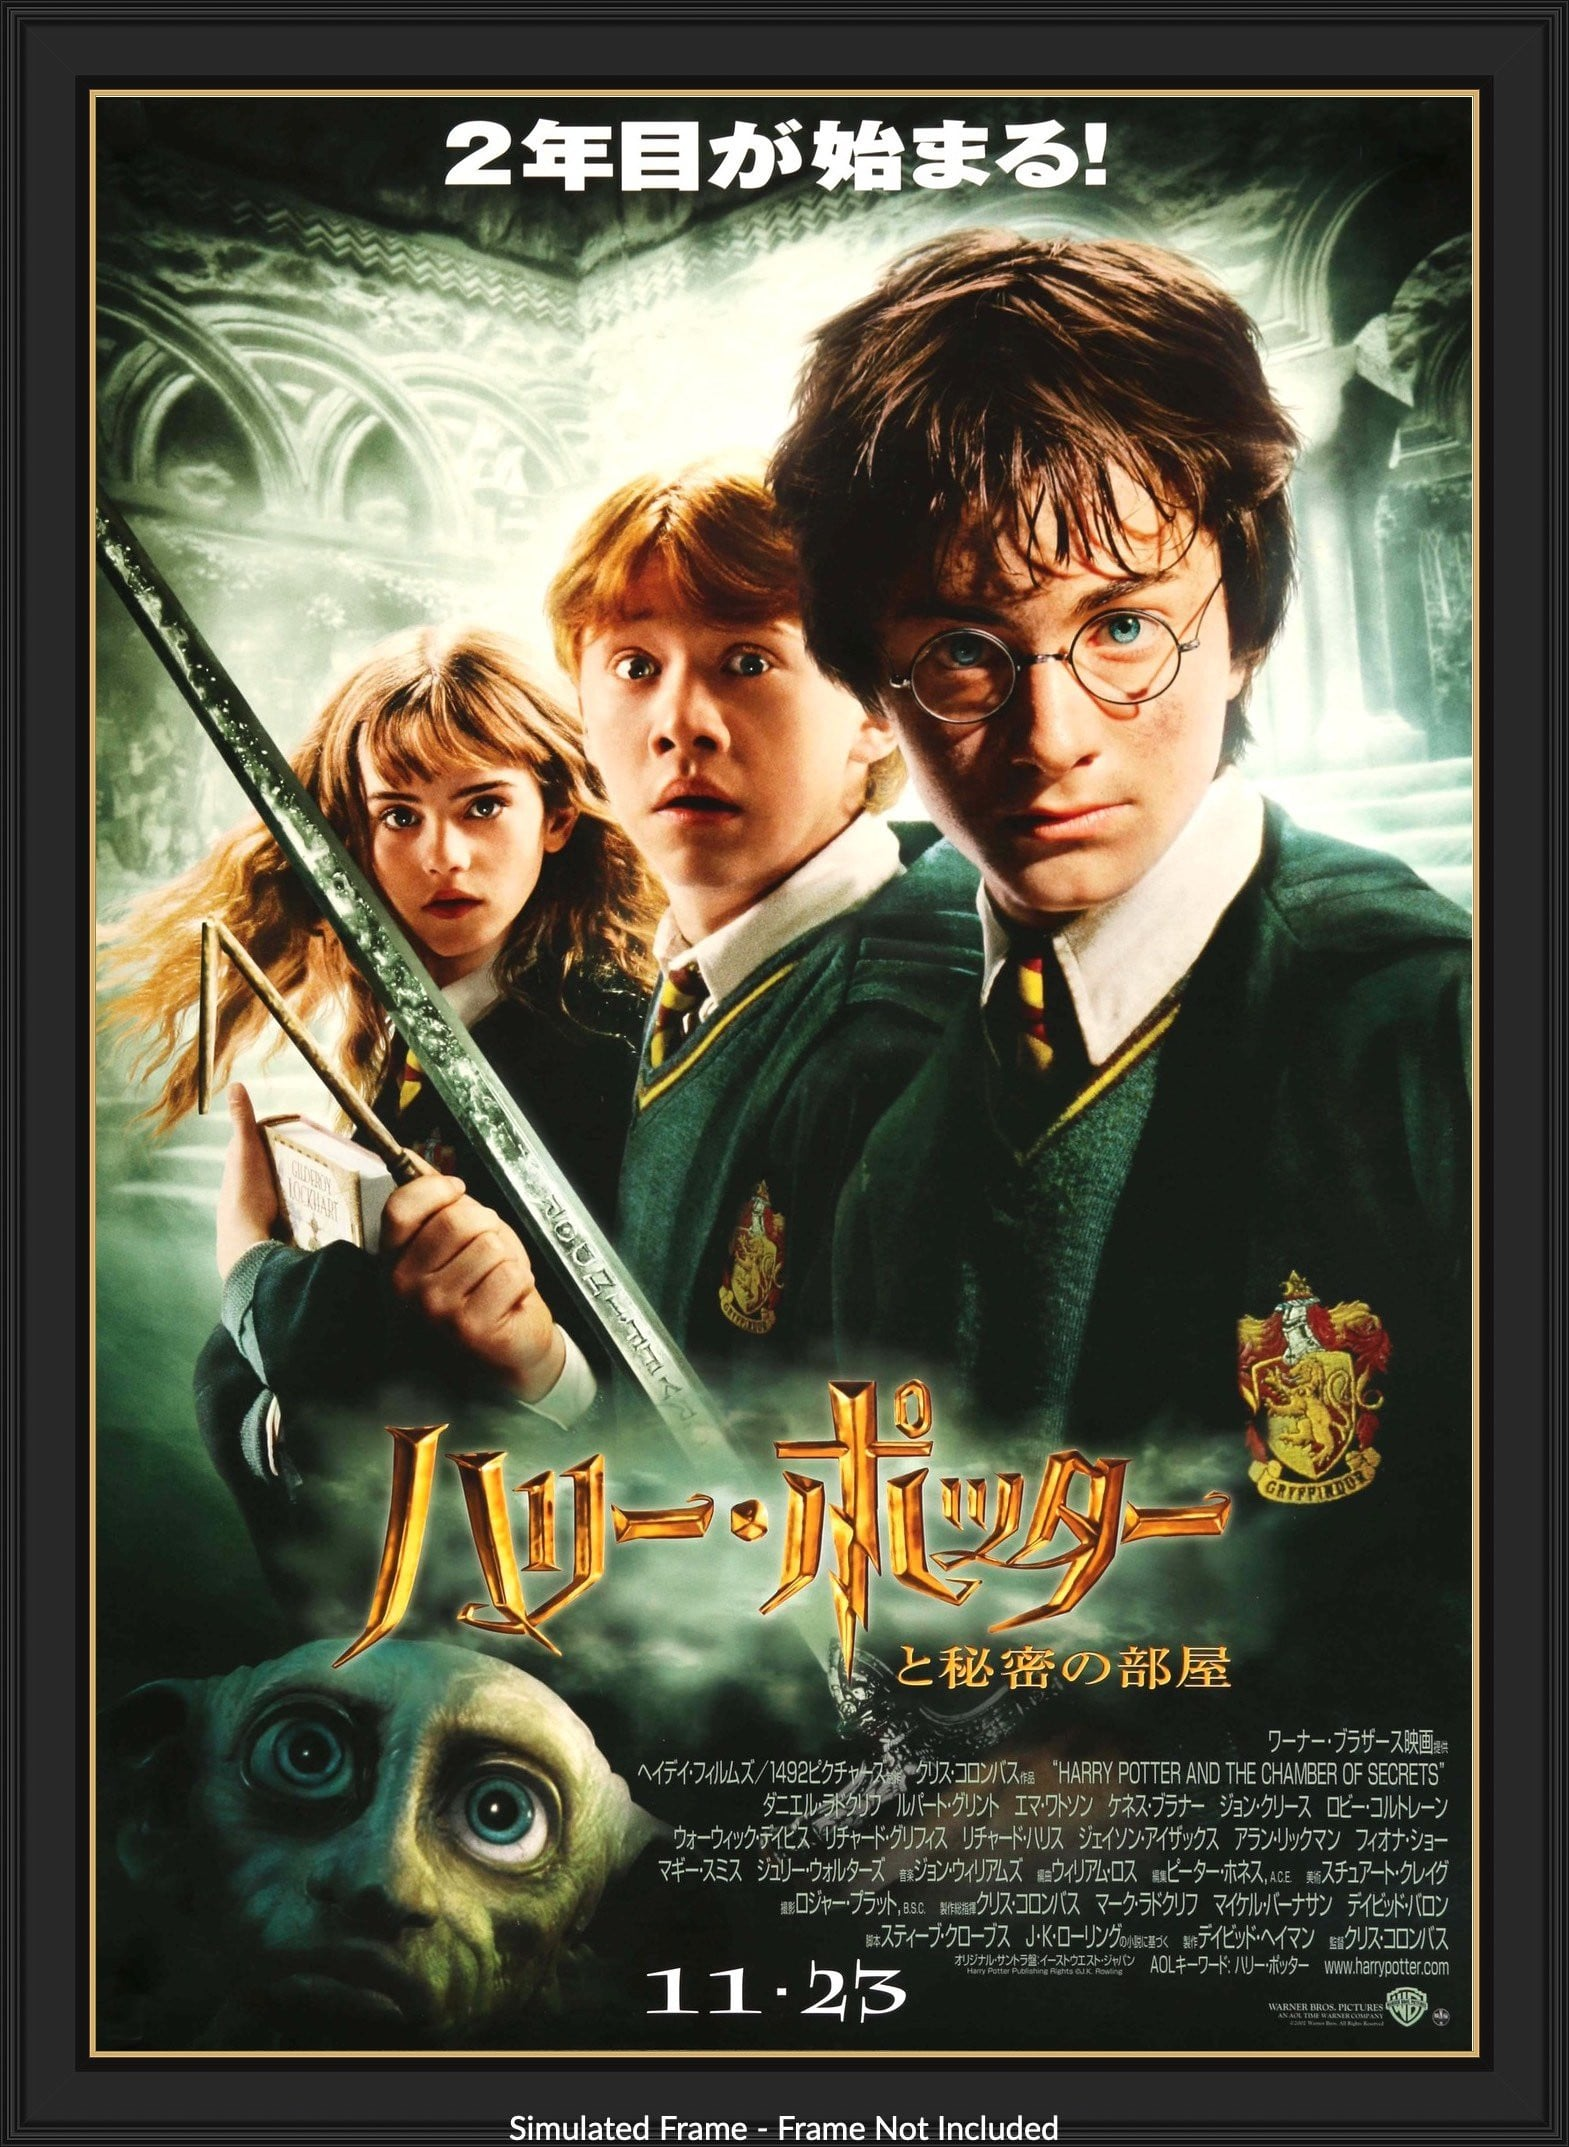 HARRY POTTER AND THE SORCERER/'S STONE Theatrical Poster A1 - A2